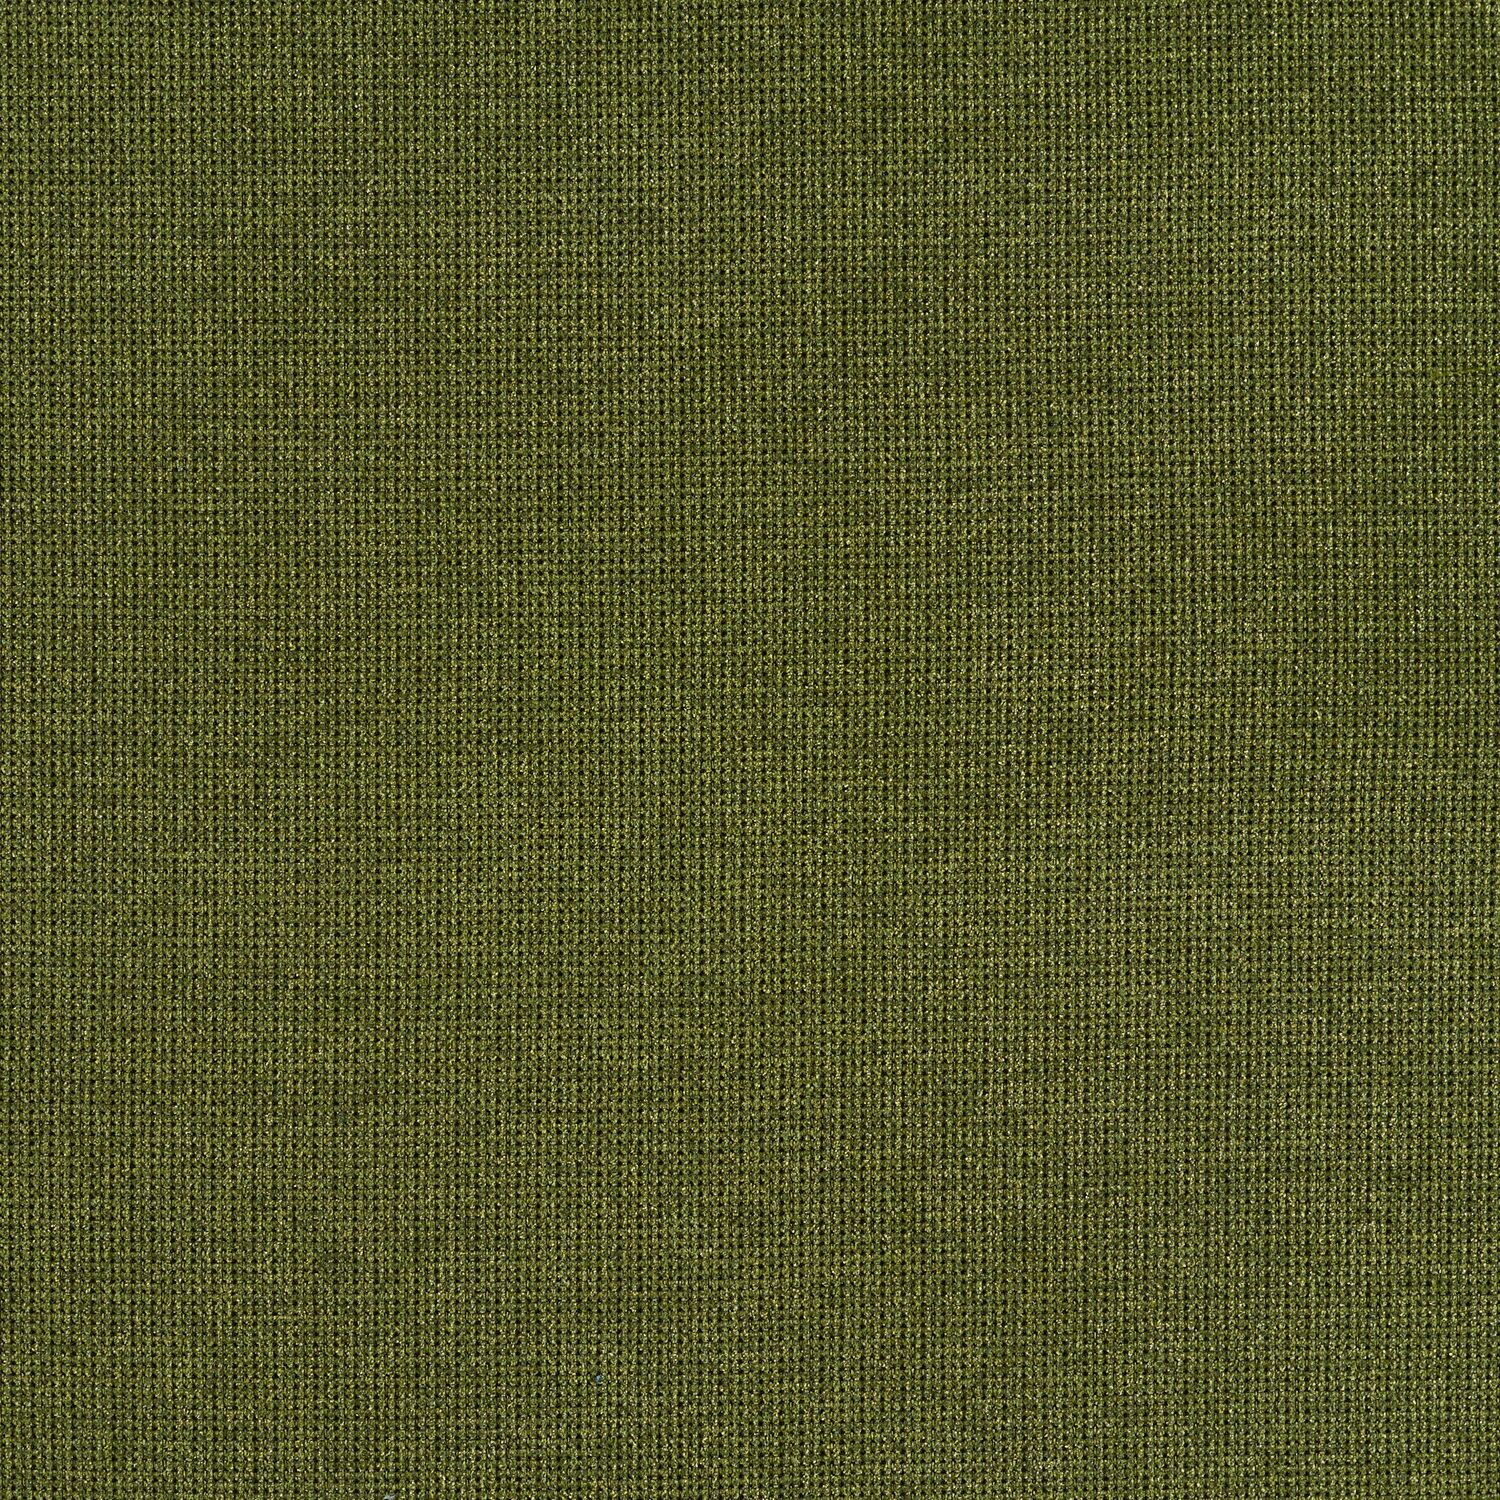 Doyenne - Terre Verte - 4078 - 09 Tileable Swatches